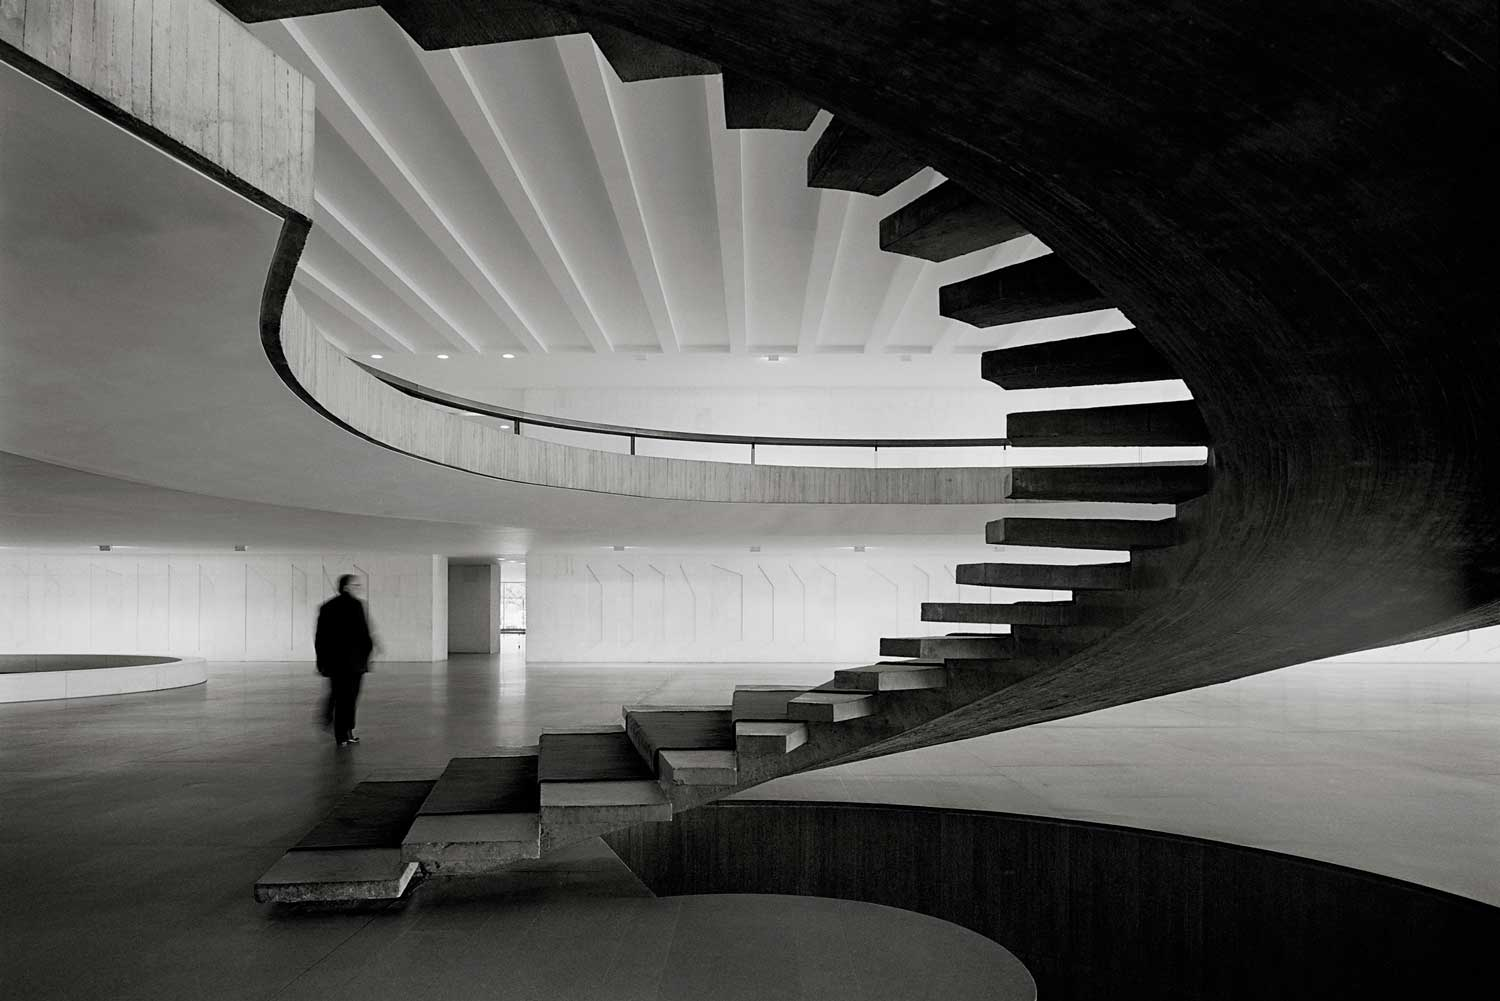 Itamaraty Palace by Oscar Niemeyer | Yellowtrace